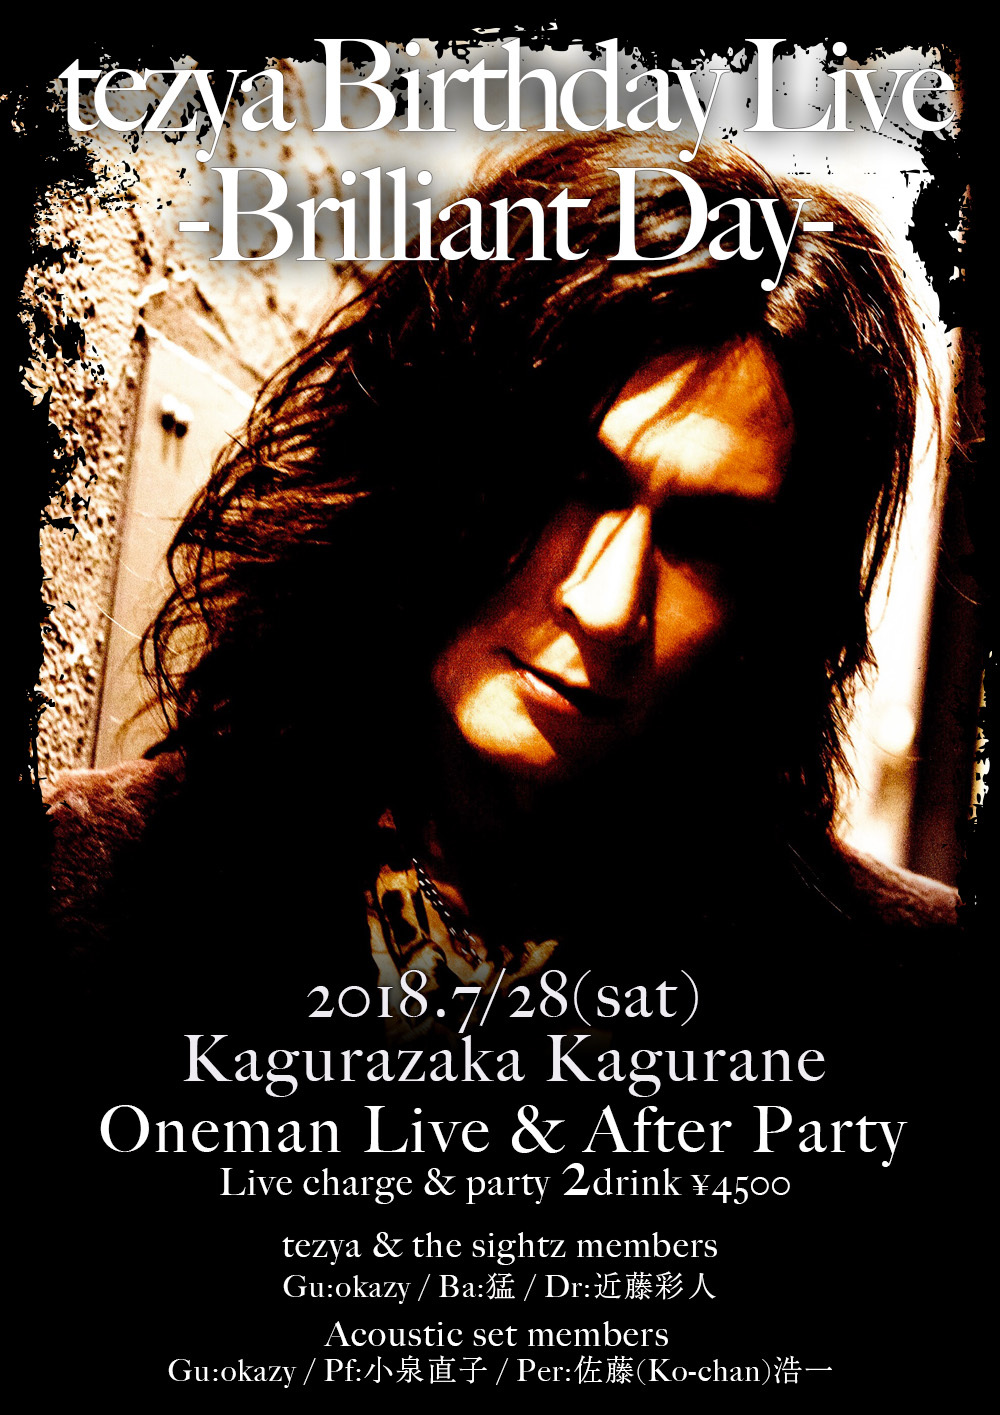 LIVEチケット tezya Birthday Live -Brilliant Day-